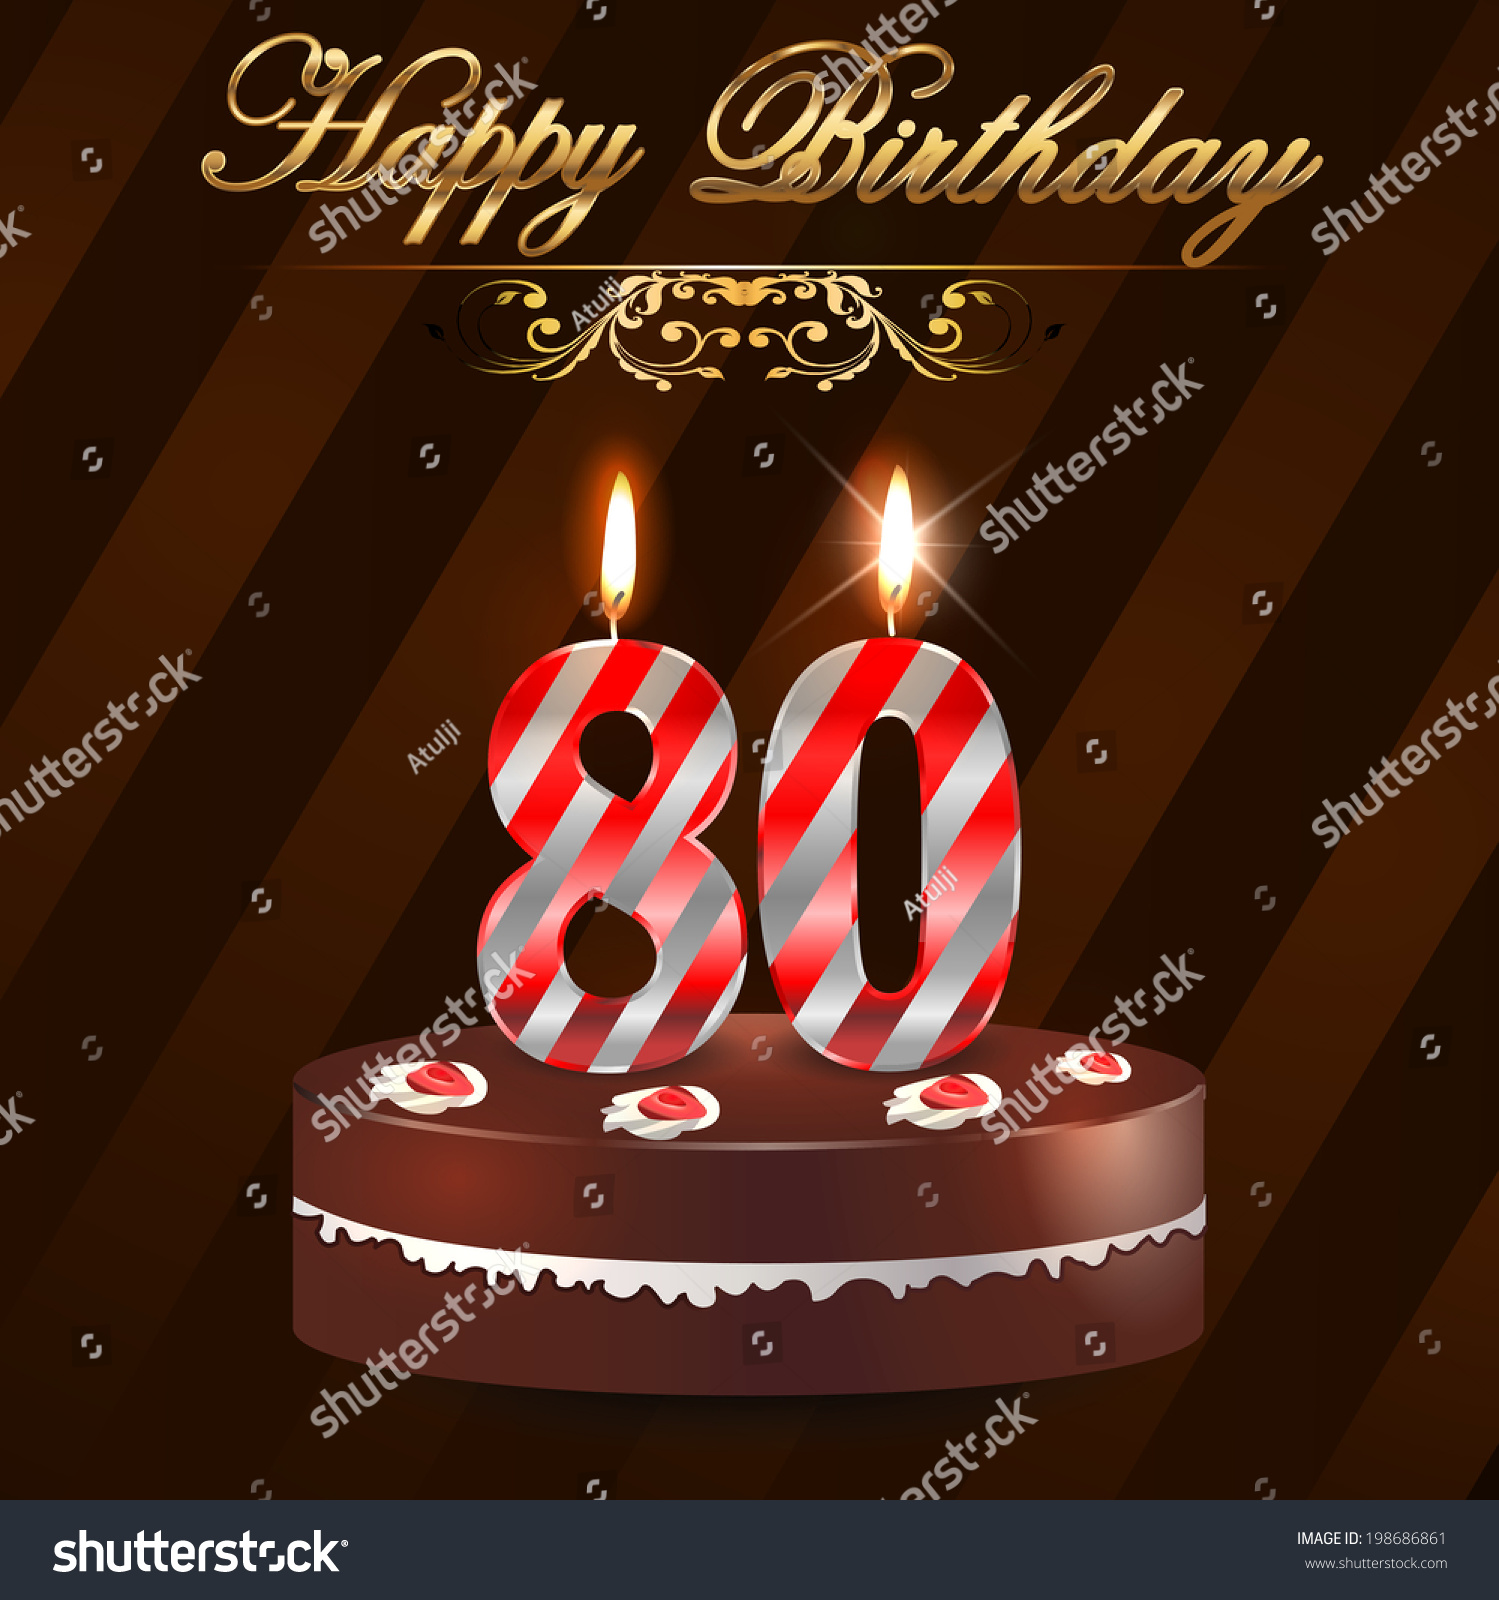 80 Year Happy Birthday Card With Cake And Candles 80th